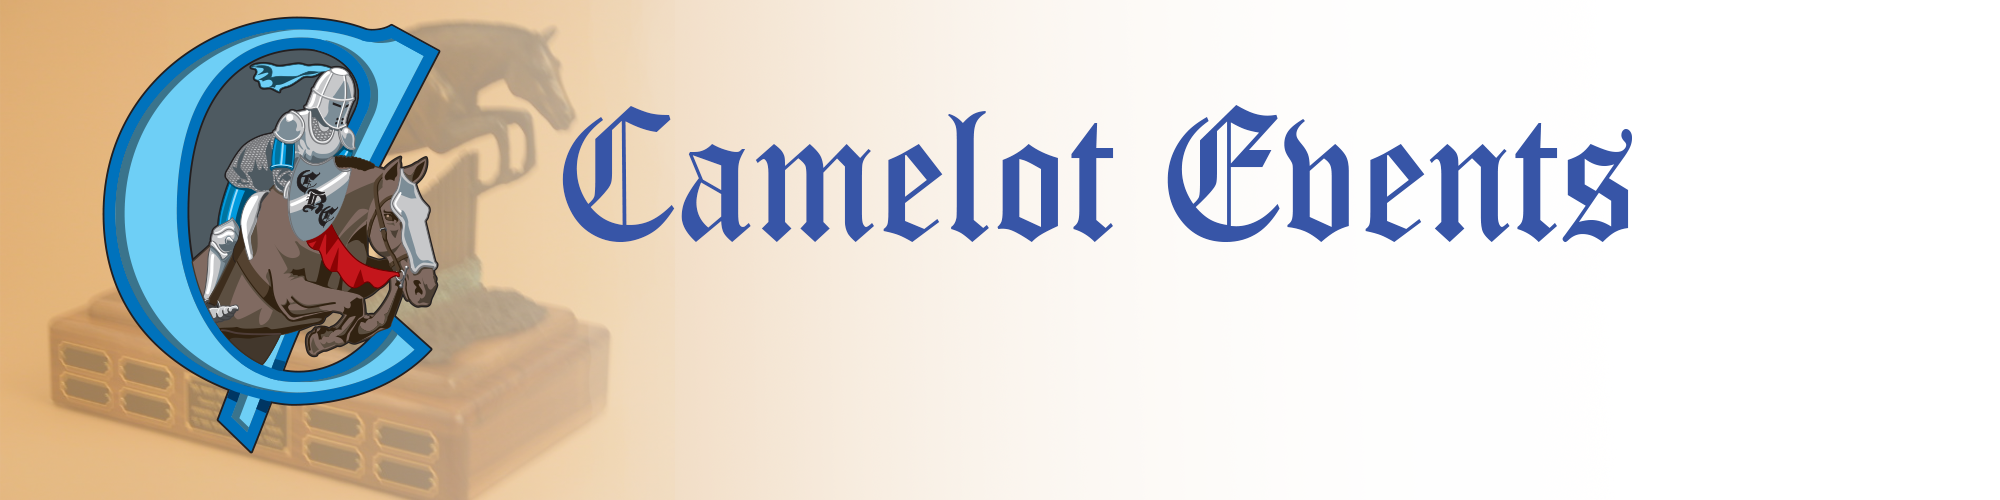 Camelot Events, Logo